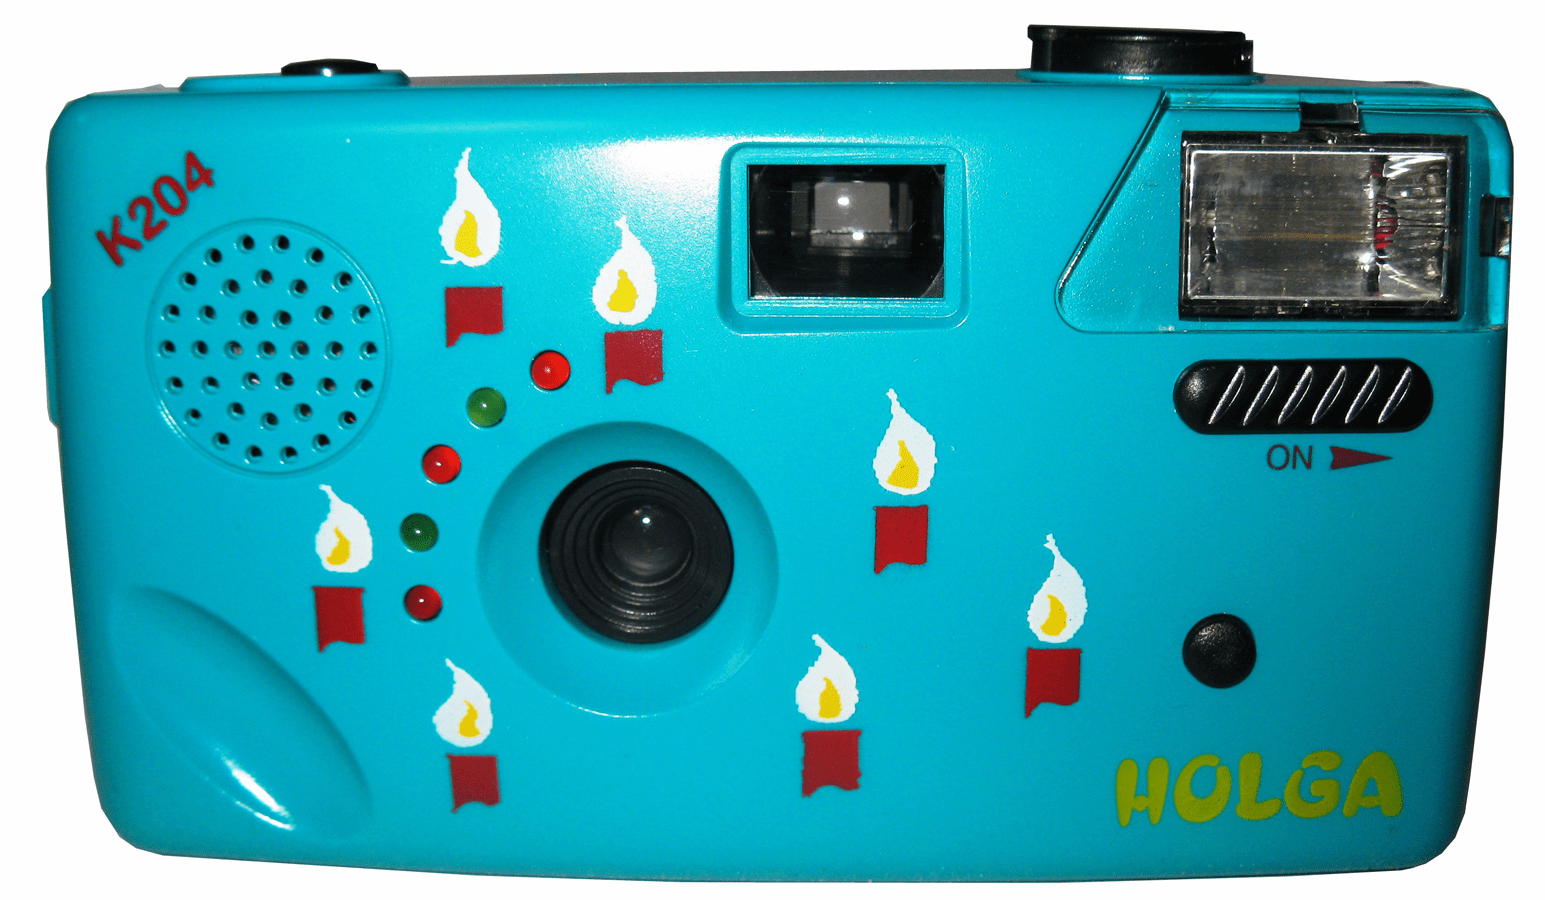 Holga K-204 35mm Original Teal Blue Noise Making Film Camera